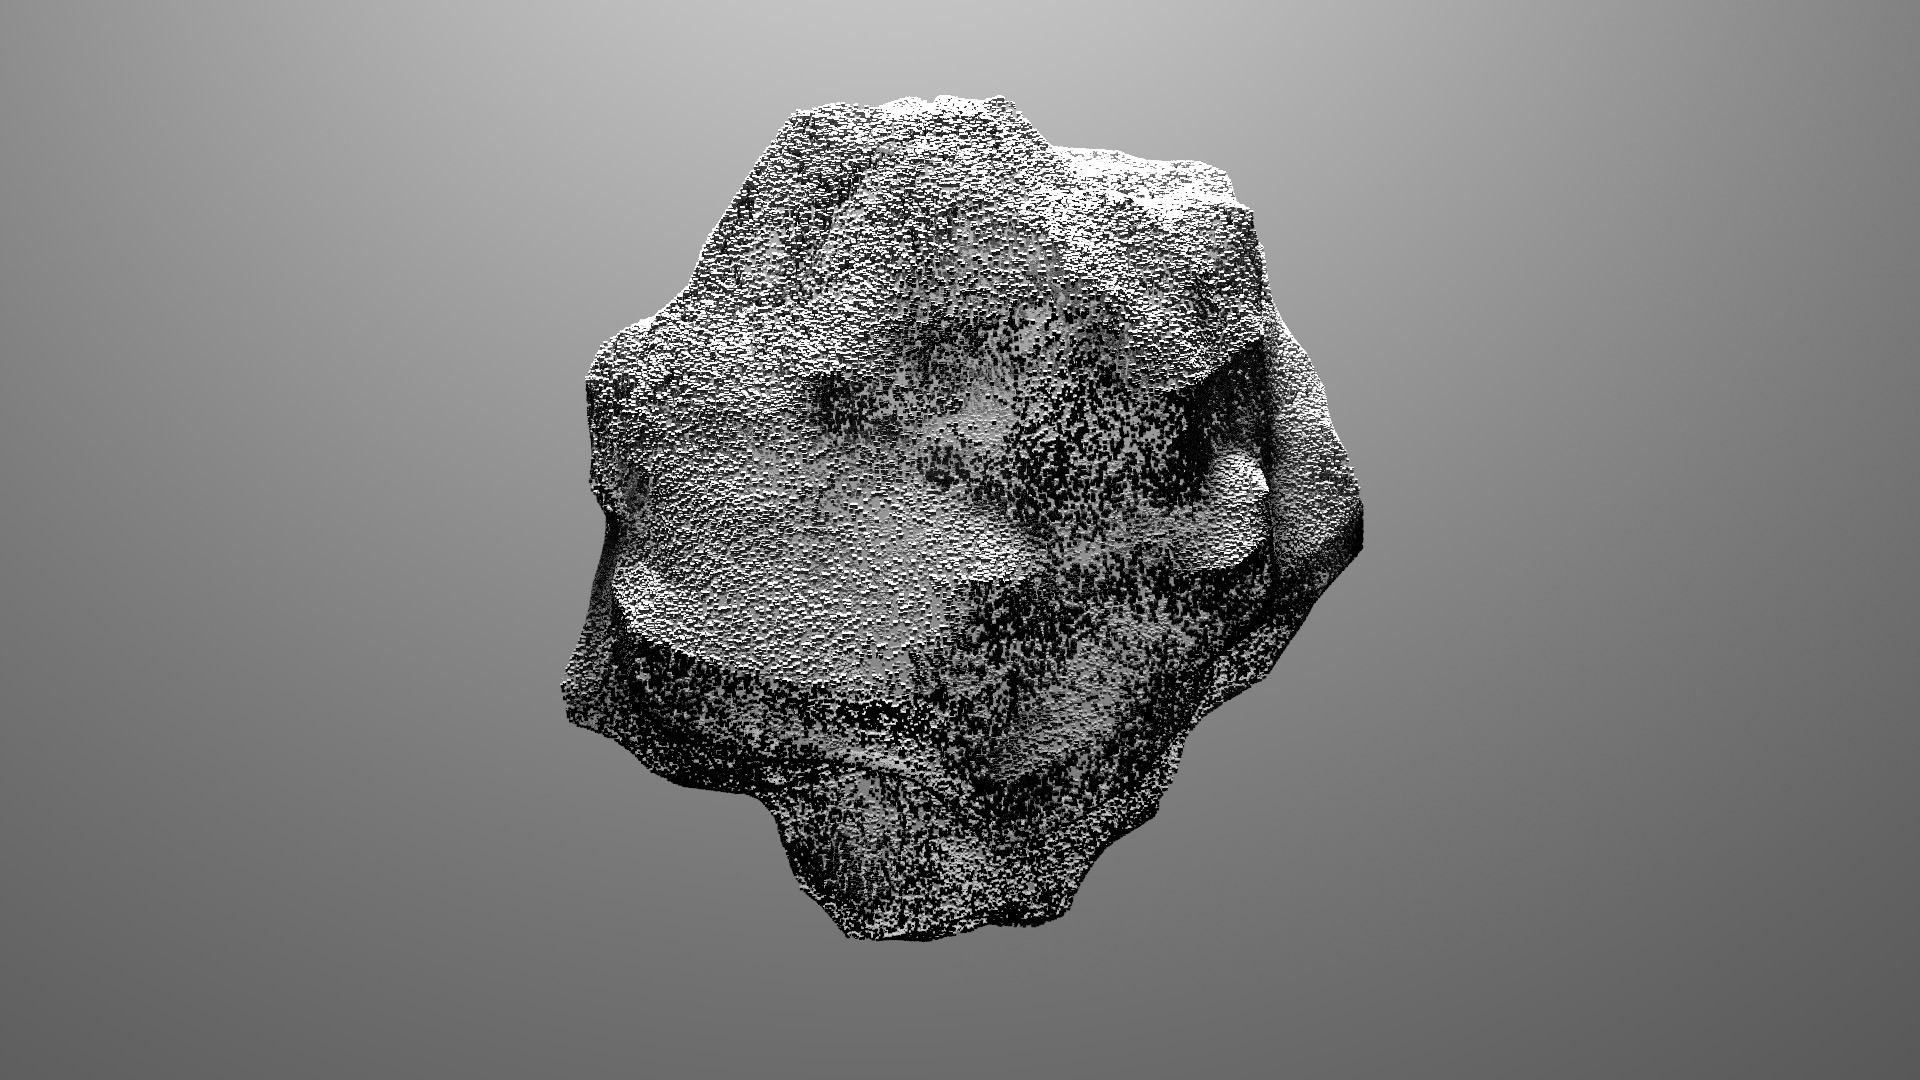 Data in the form or a giant rock